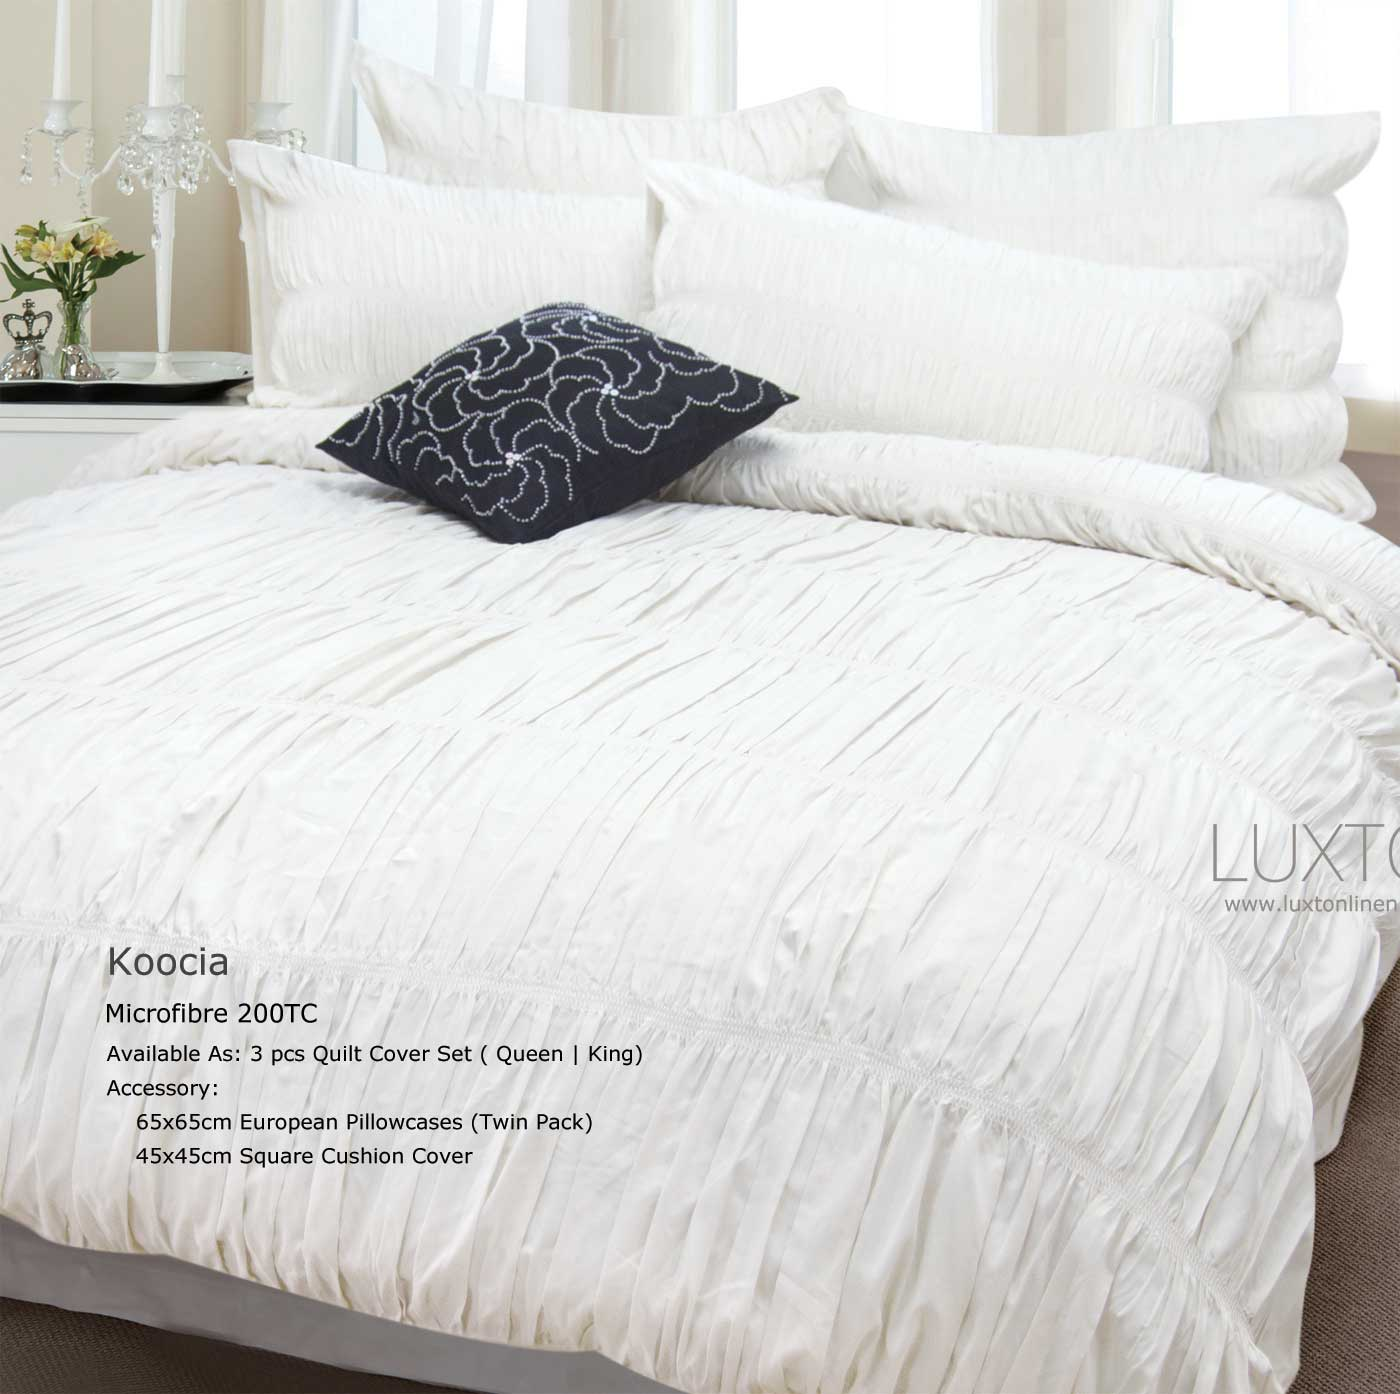 Koocia-King-size-duvet-Doona-Quilt-Cover-Set-3pcs-Bed-linen-set-MC0014K